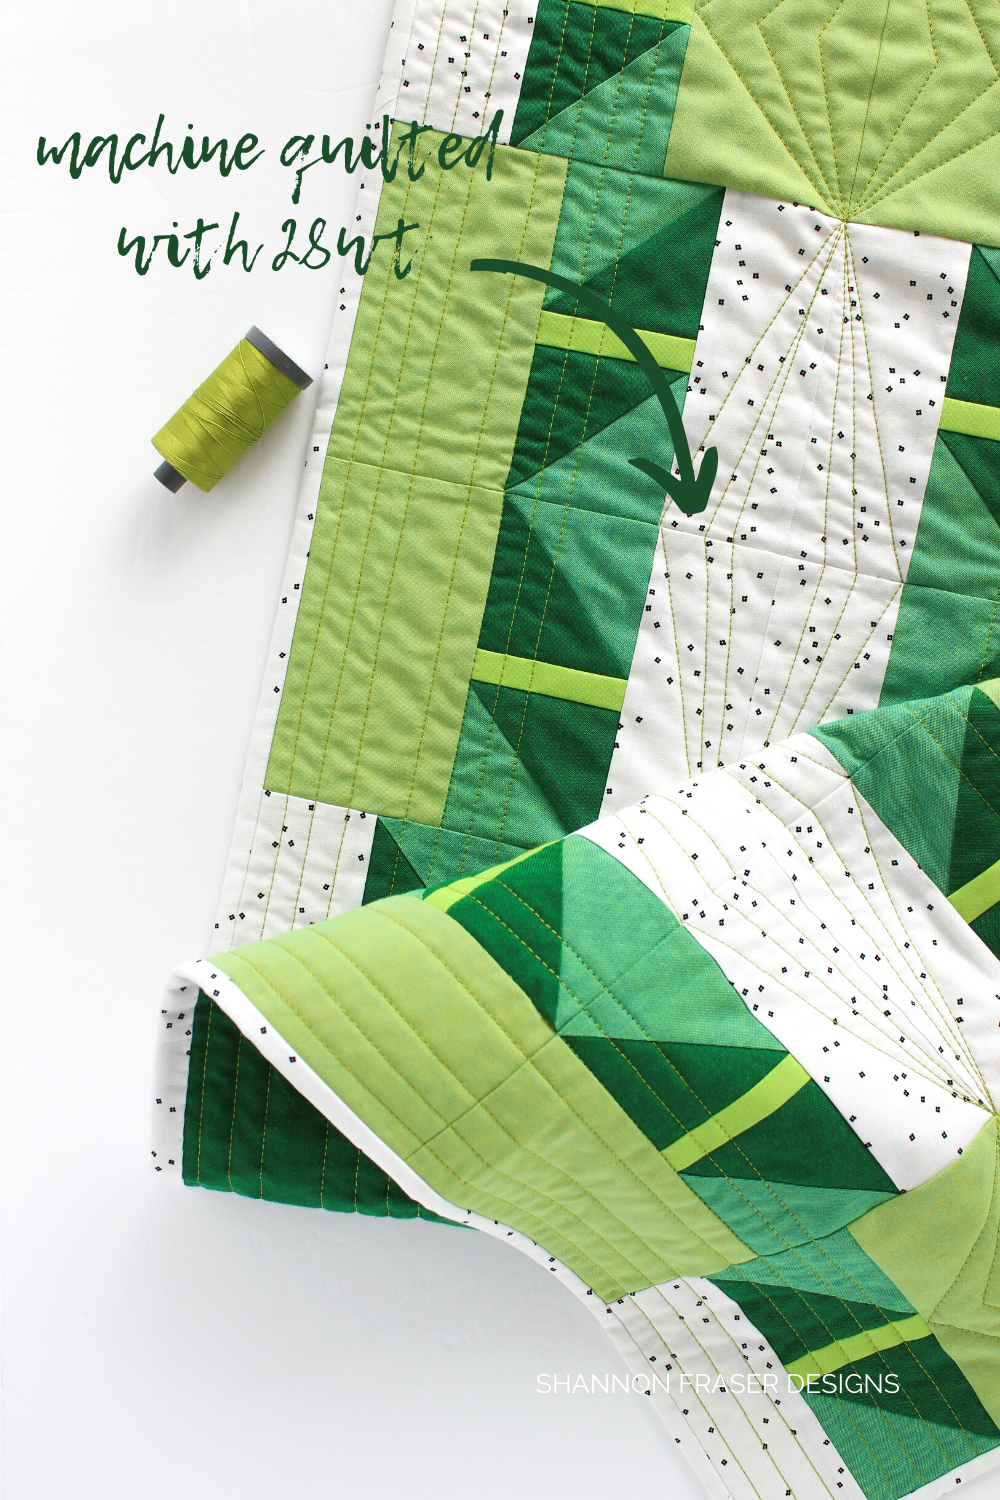 Shattered Star quilted table runner in shades of green Artisan Cottons and quilted with 28wt Aurifil thread for lots of quilty texture | Shannon Fraser Designs #quiltedtablerunner